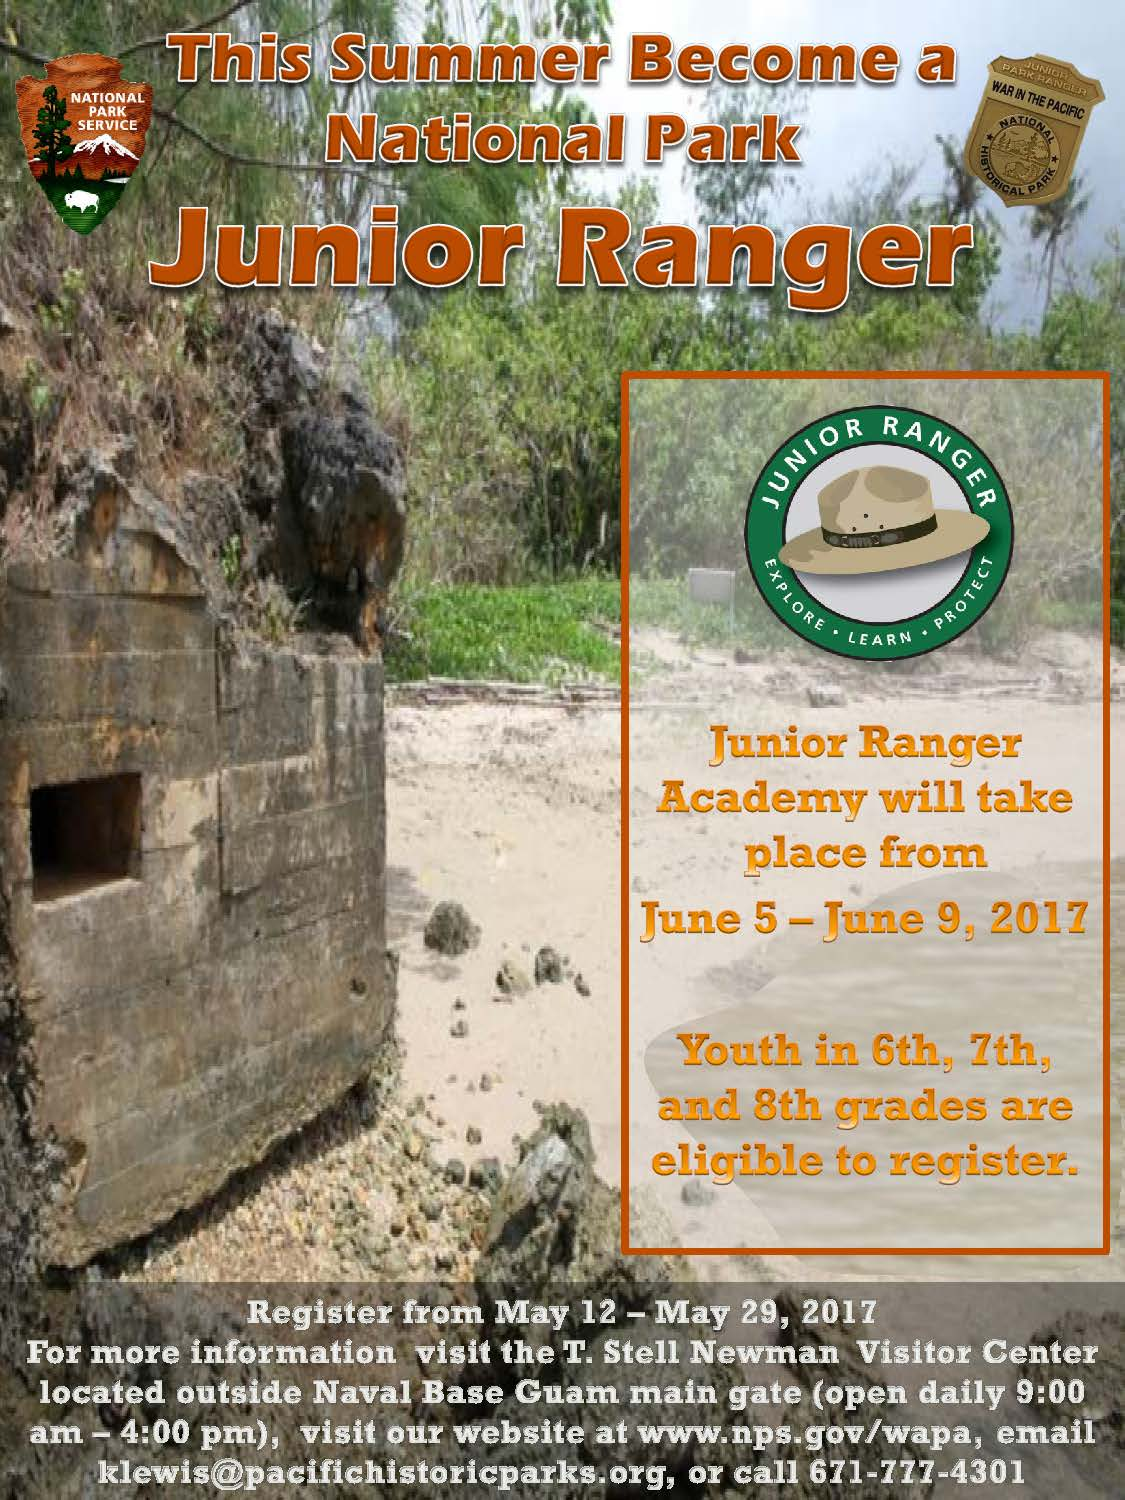 War in the Pacific National Historical Park Hosts Junior Ranger Academy!